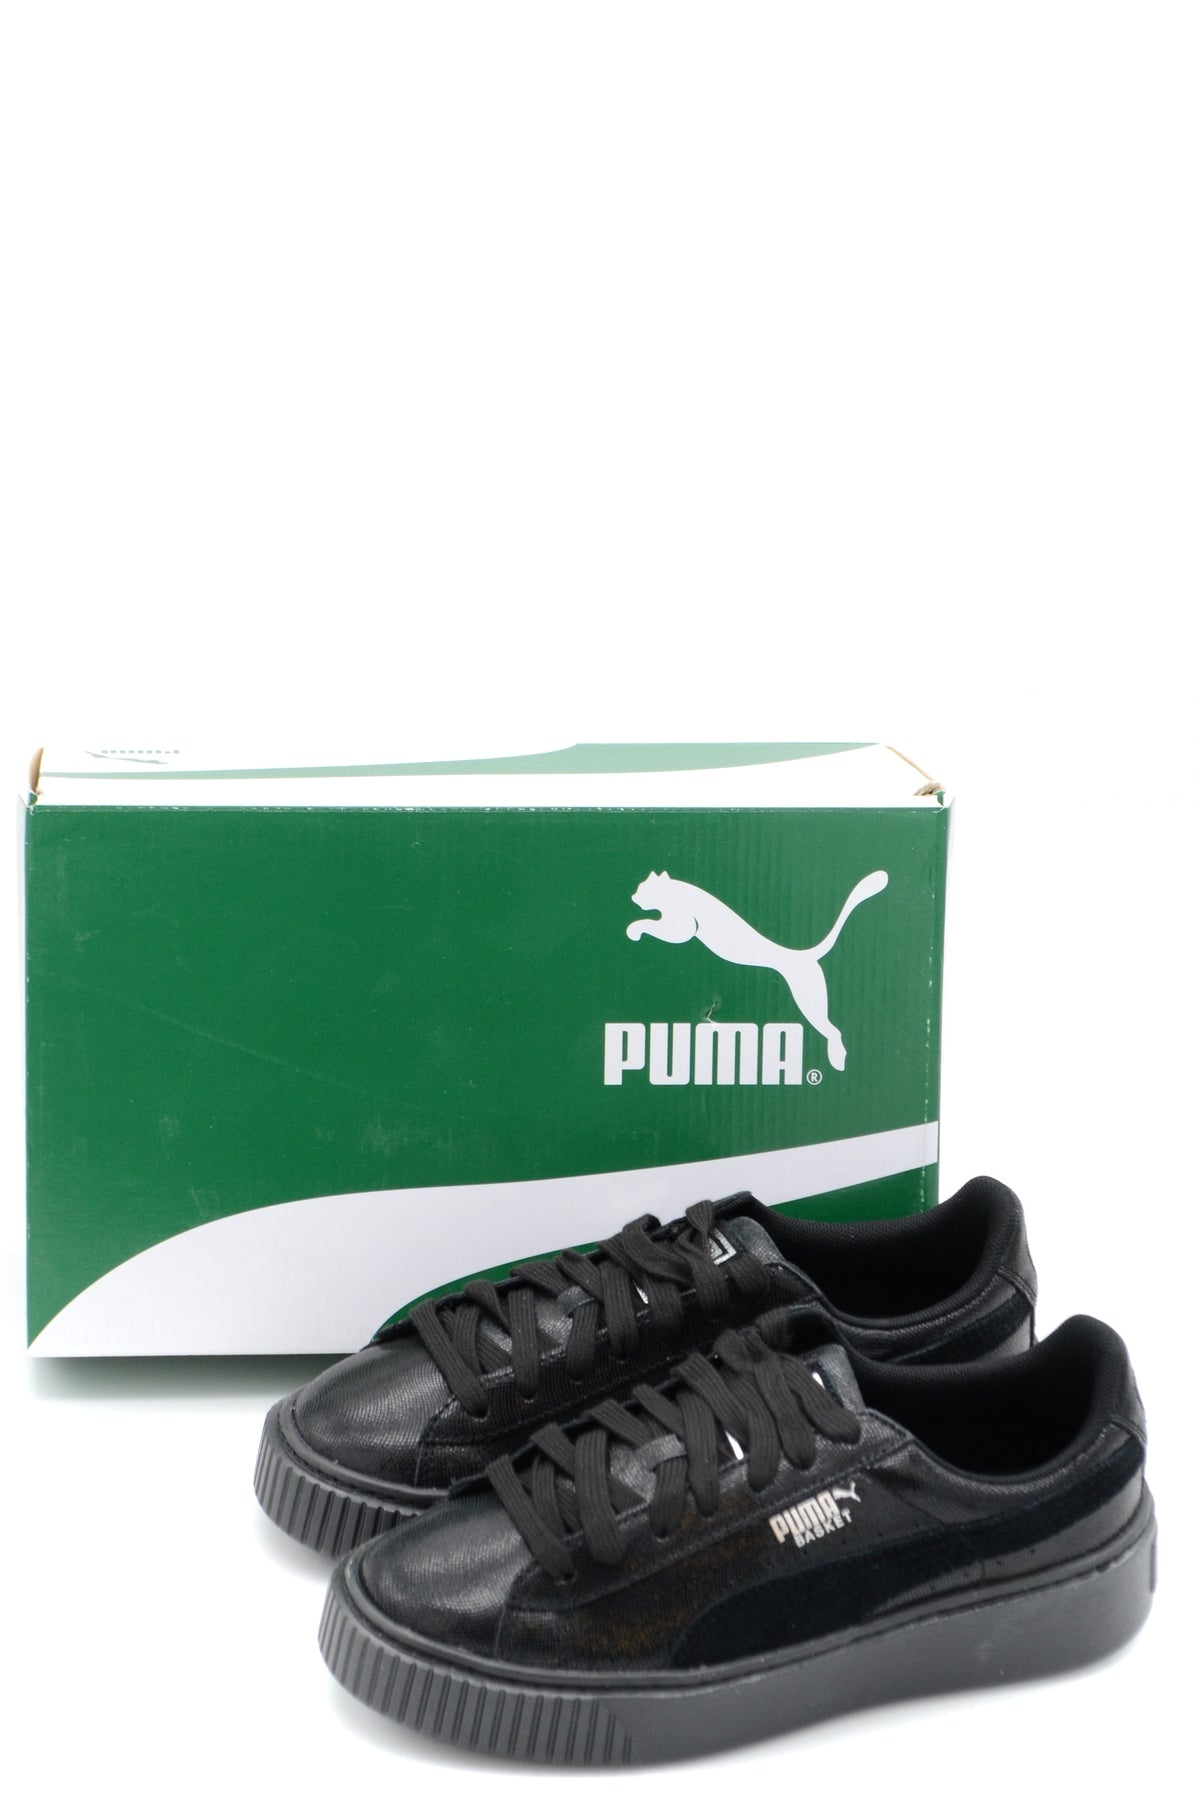 Shoes Puma-Sneakers - WOMAN-Product Details Type Of Accessory: ShoesSeason: Spring / SummerTerms: New With LabelMain Color: BlackGender: WomanMade In: VietnamManufacturer Part Number: 364587 01Size: EuYear: 2018Composition: Leather 100%-Keyomi-Sook